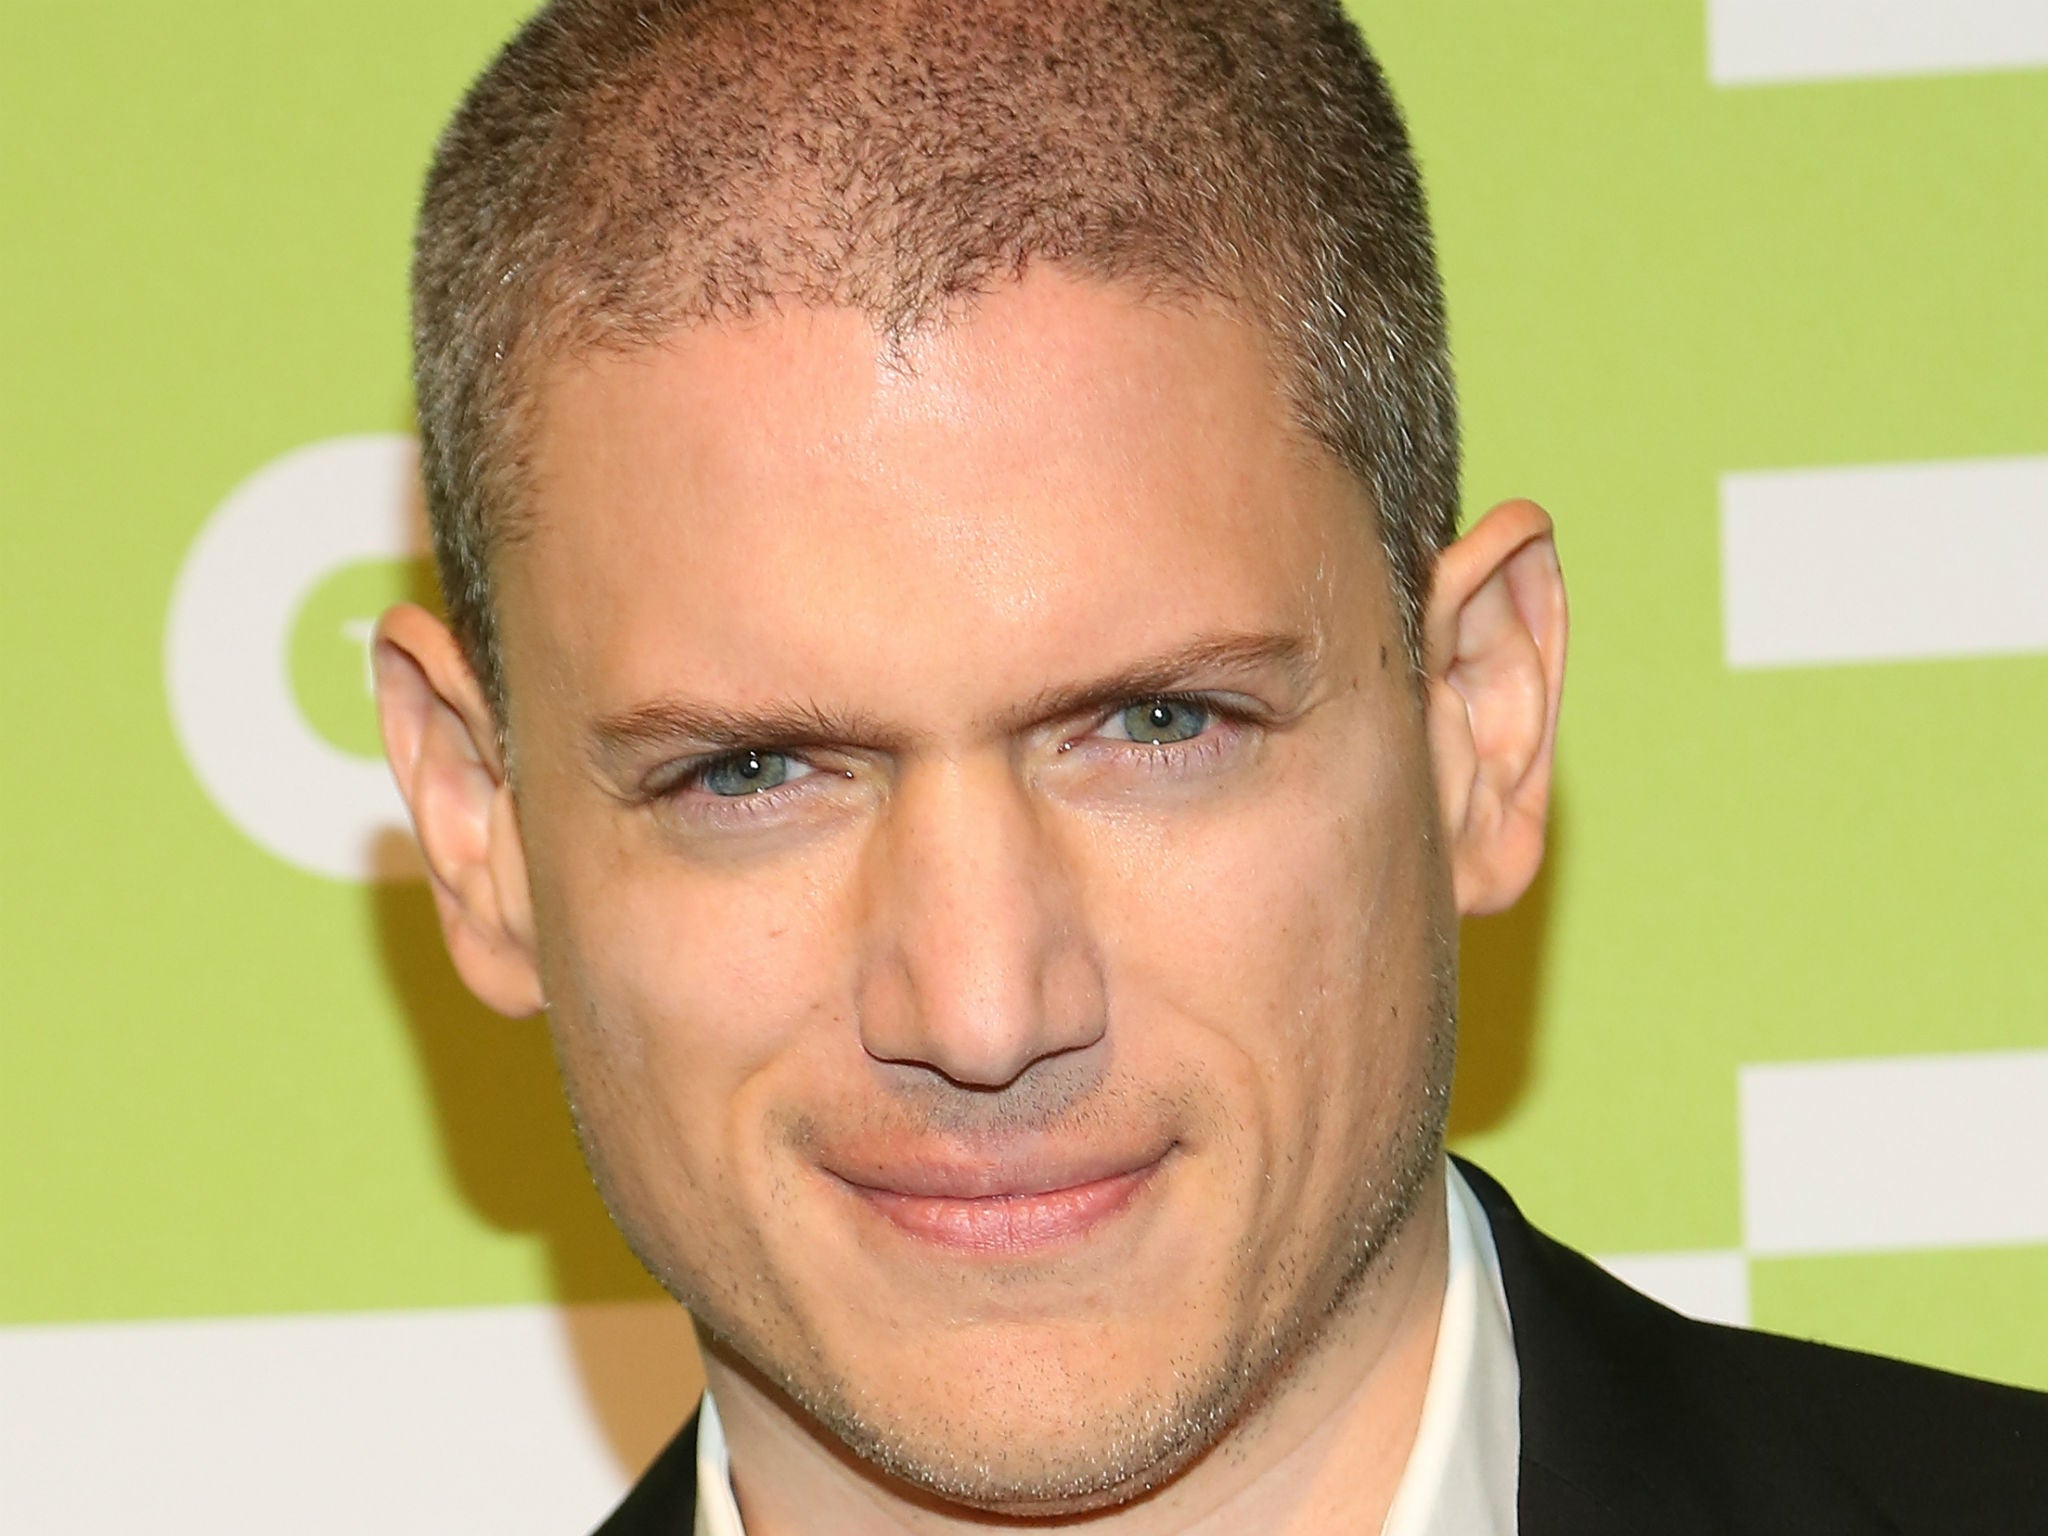 wentworth miller prison break actor pens essay on mental health wentworth miller prison break actor pens essay on mental health in response to body shaming facebook meme the